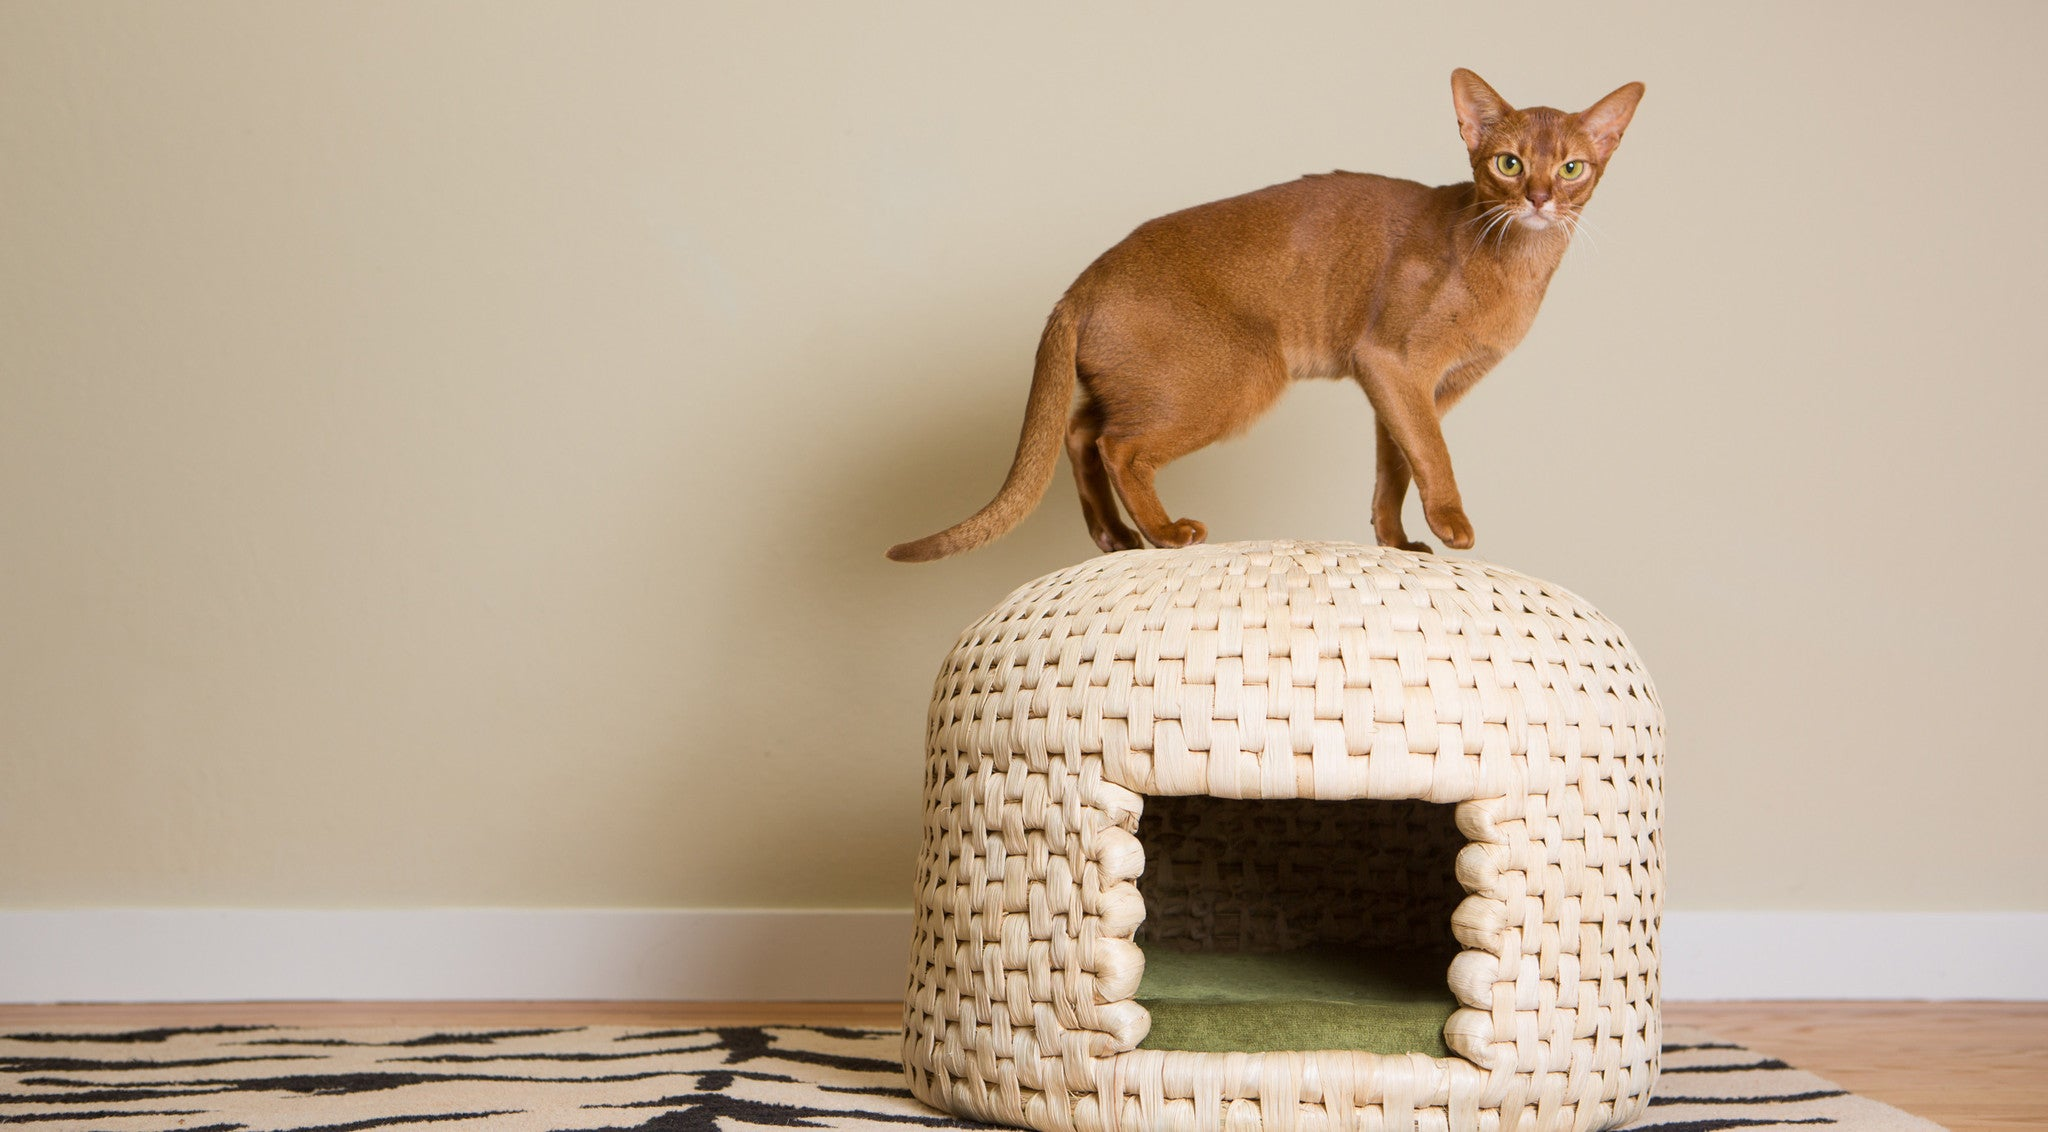 Cat climbs on neko chigura eco friendly handwoven straw cat bed house